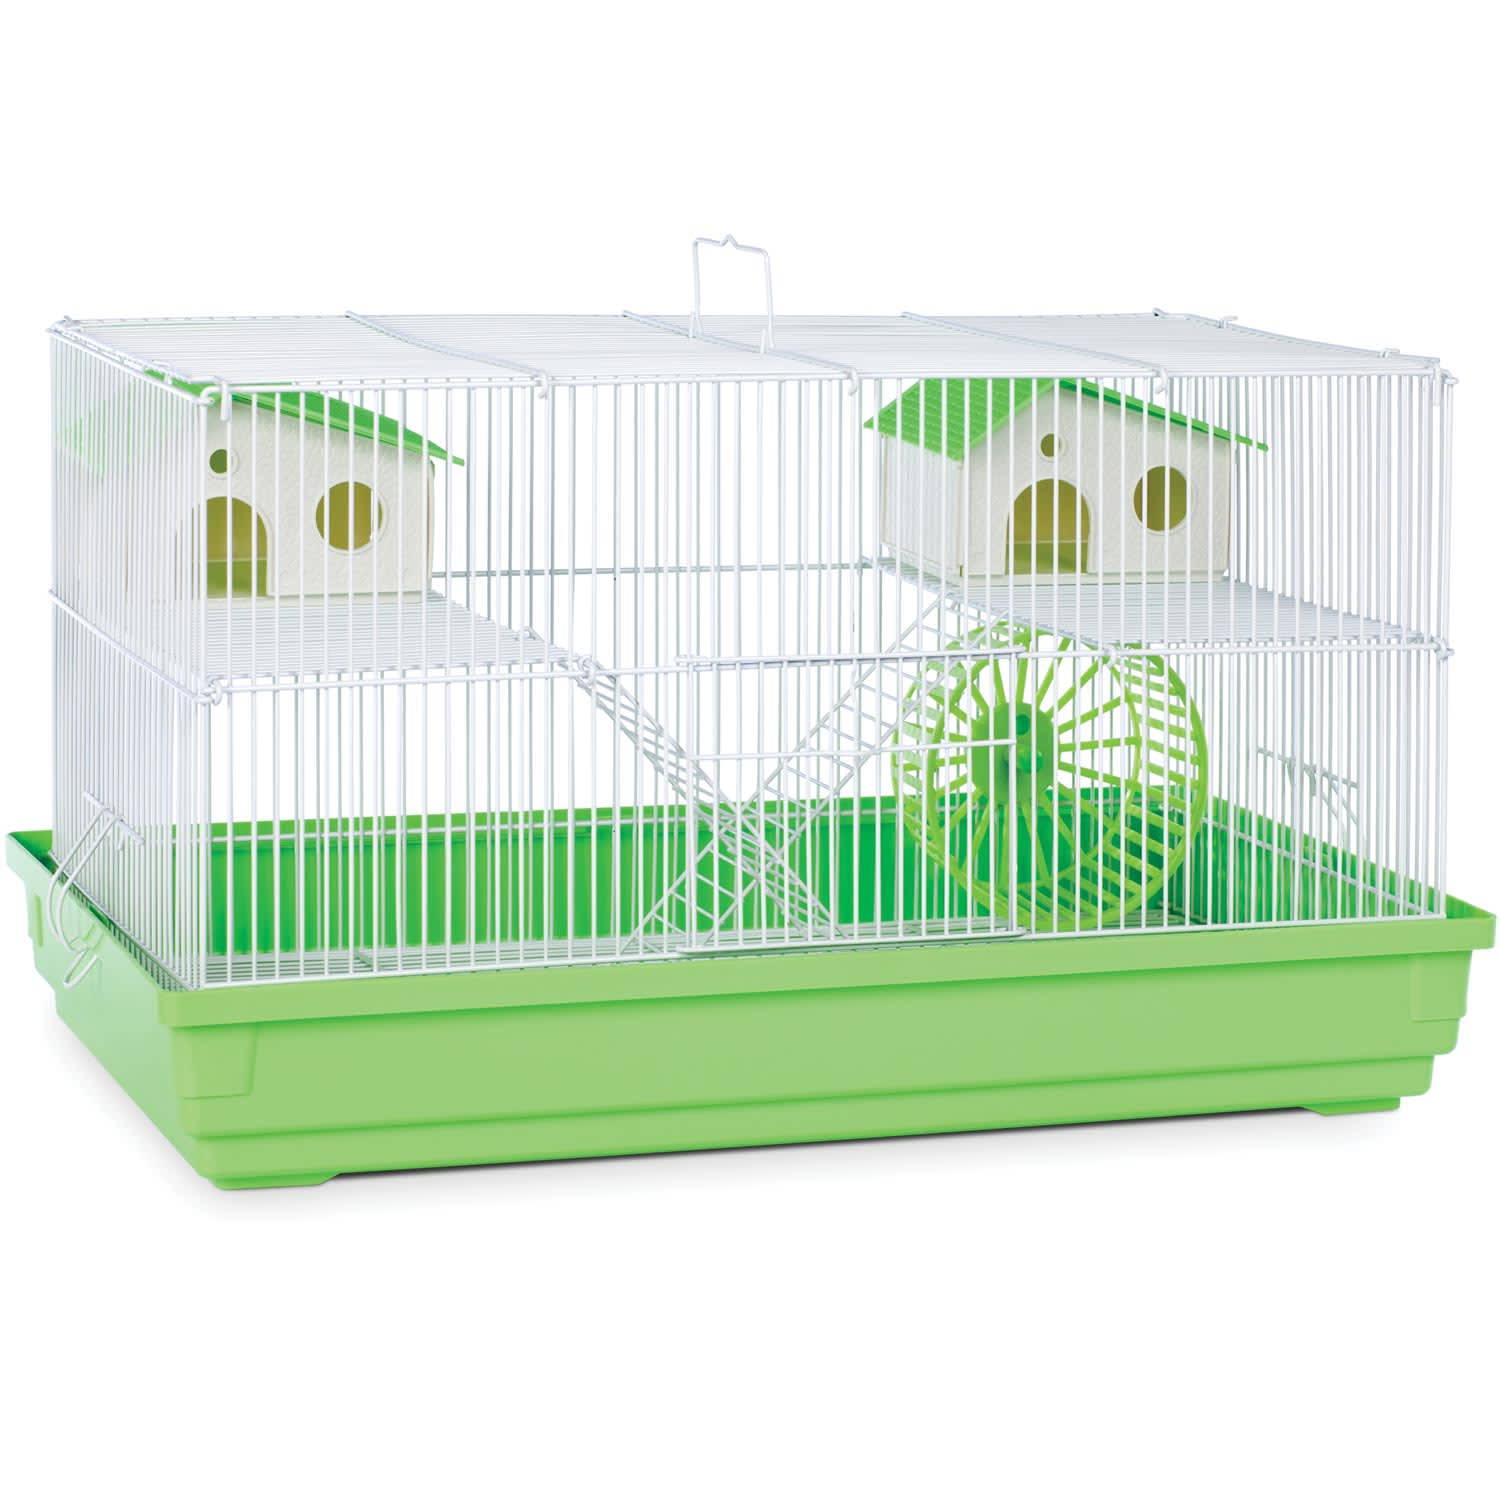 Prevue Pet Products Lime Green White Deluxe Small Animal Cage 23 L X 12 75 W X 12 75 H Petco